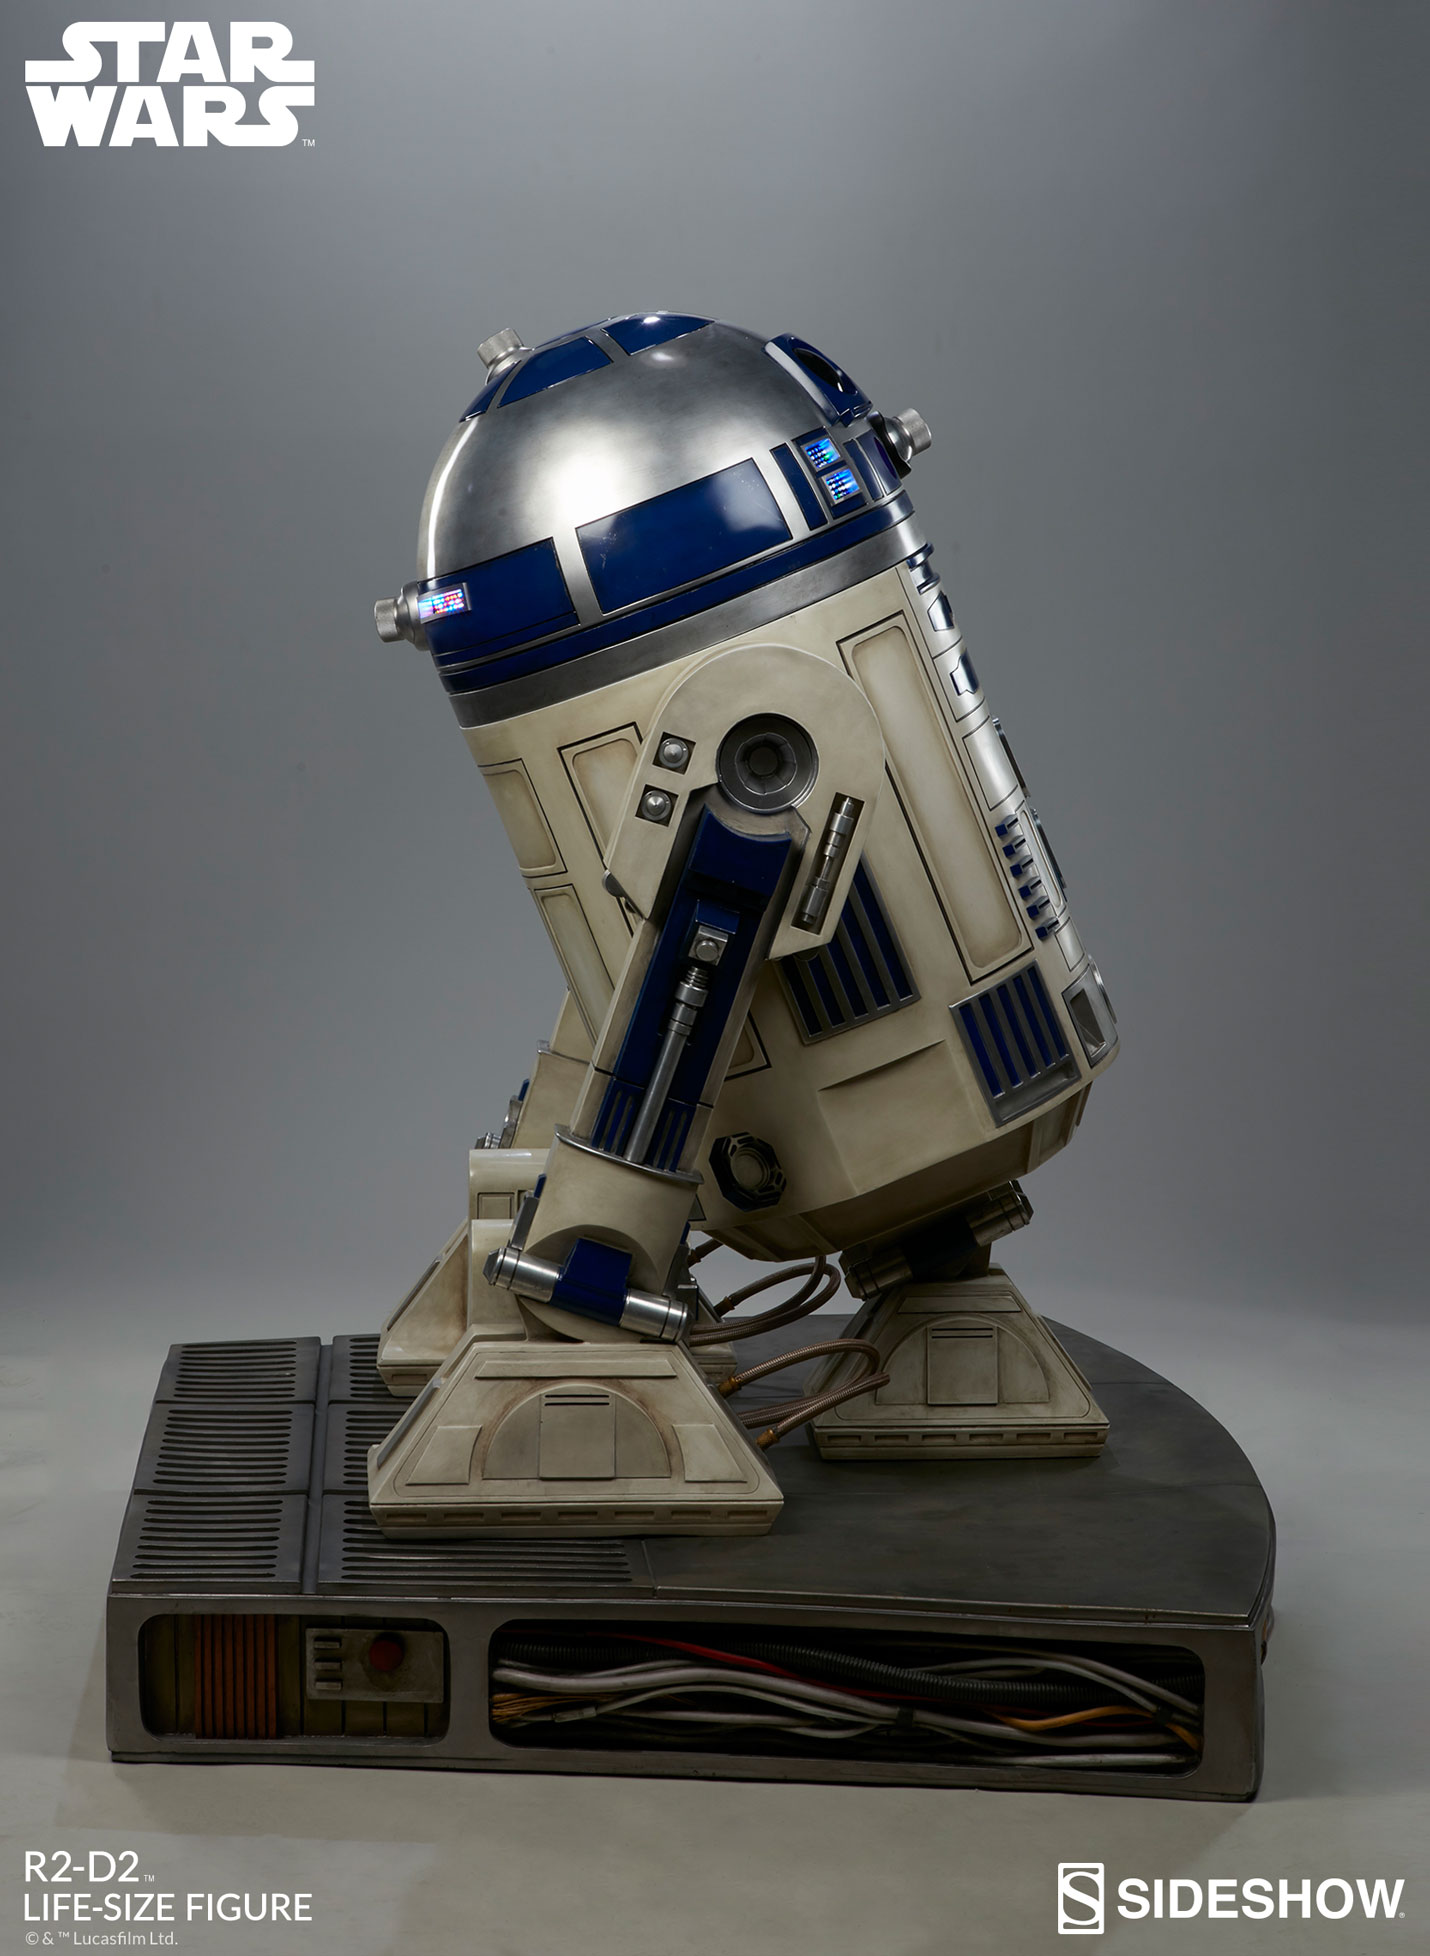 star wars r2 d2 life size figure by sideshow collectibles sideshow collectibles. Black Bedroom Furniture Sets. Home Design Ideas